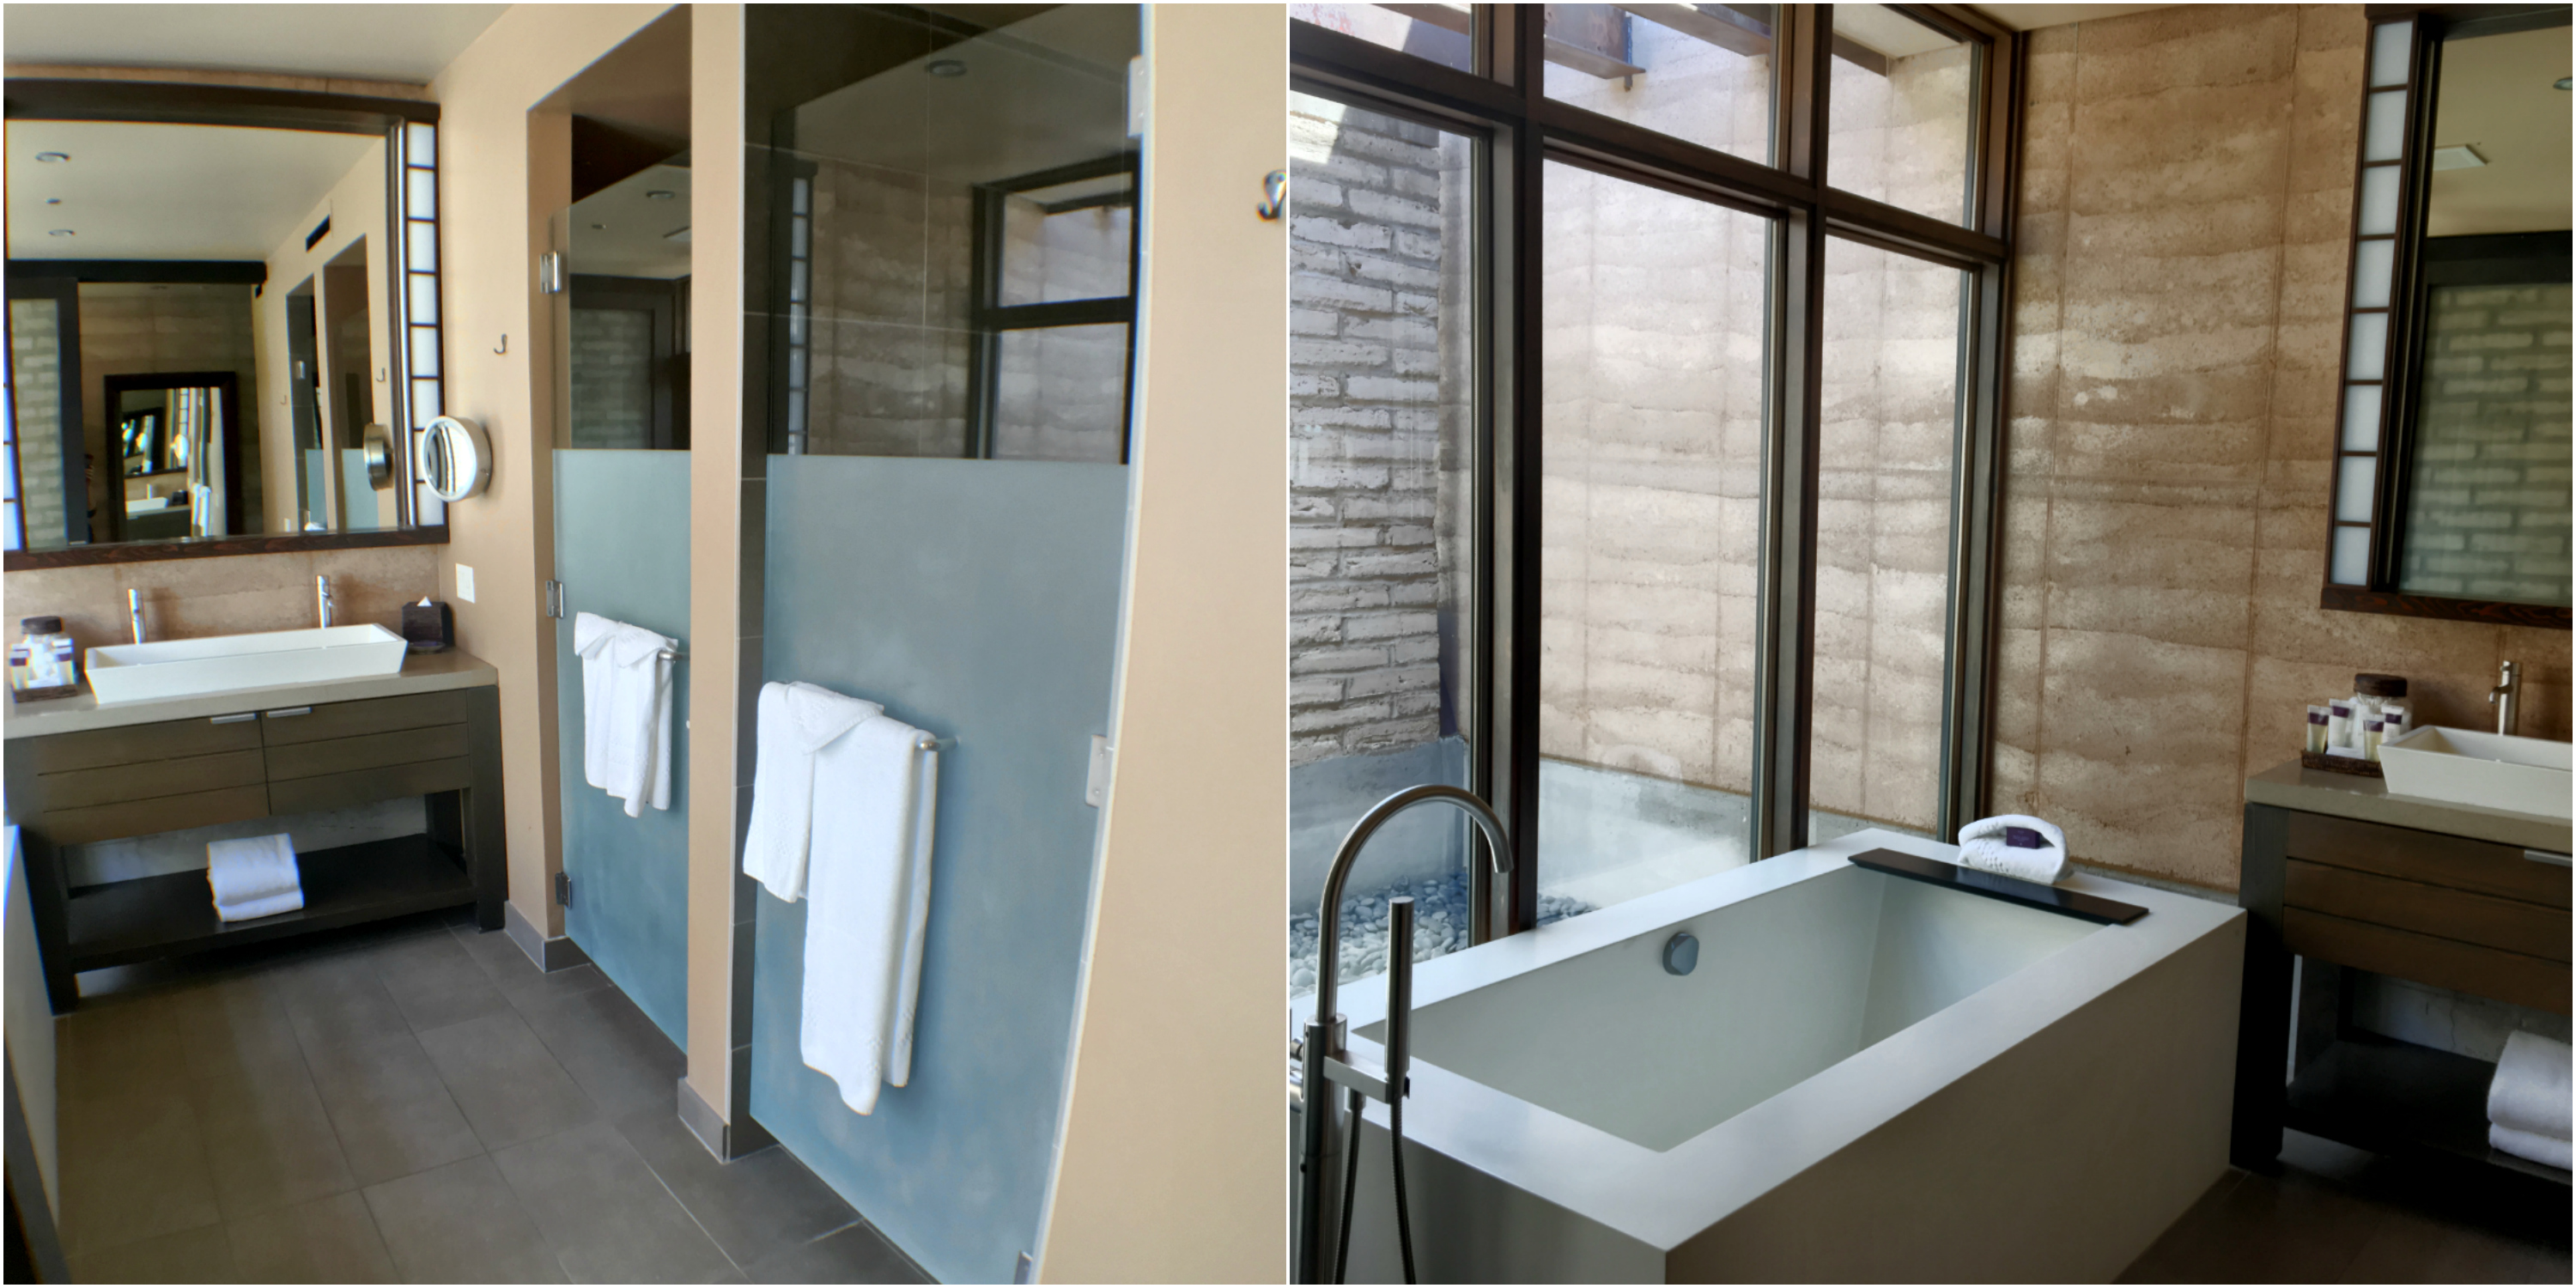 Spacious master bath with an indoor and outdoor shower, plus deep soaking tub!